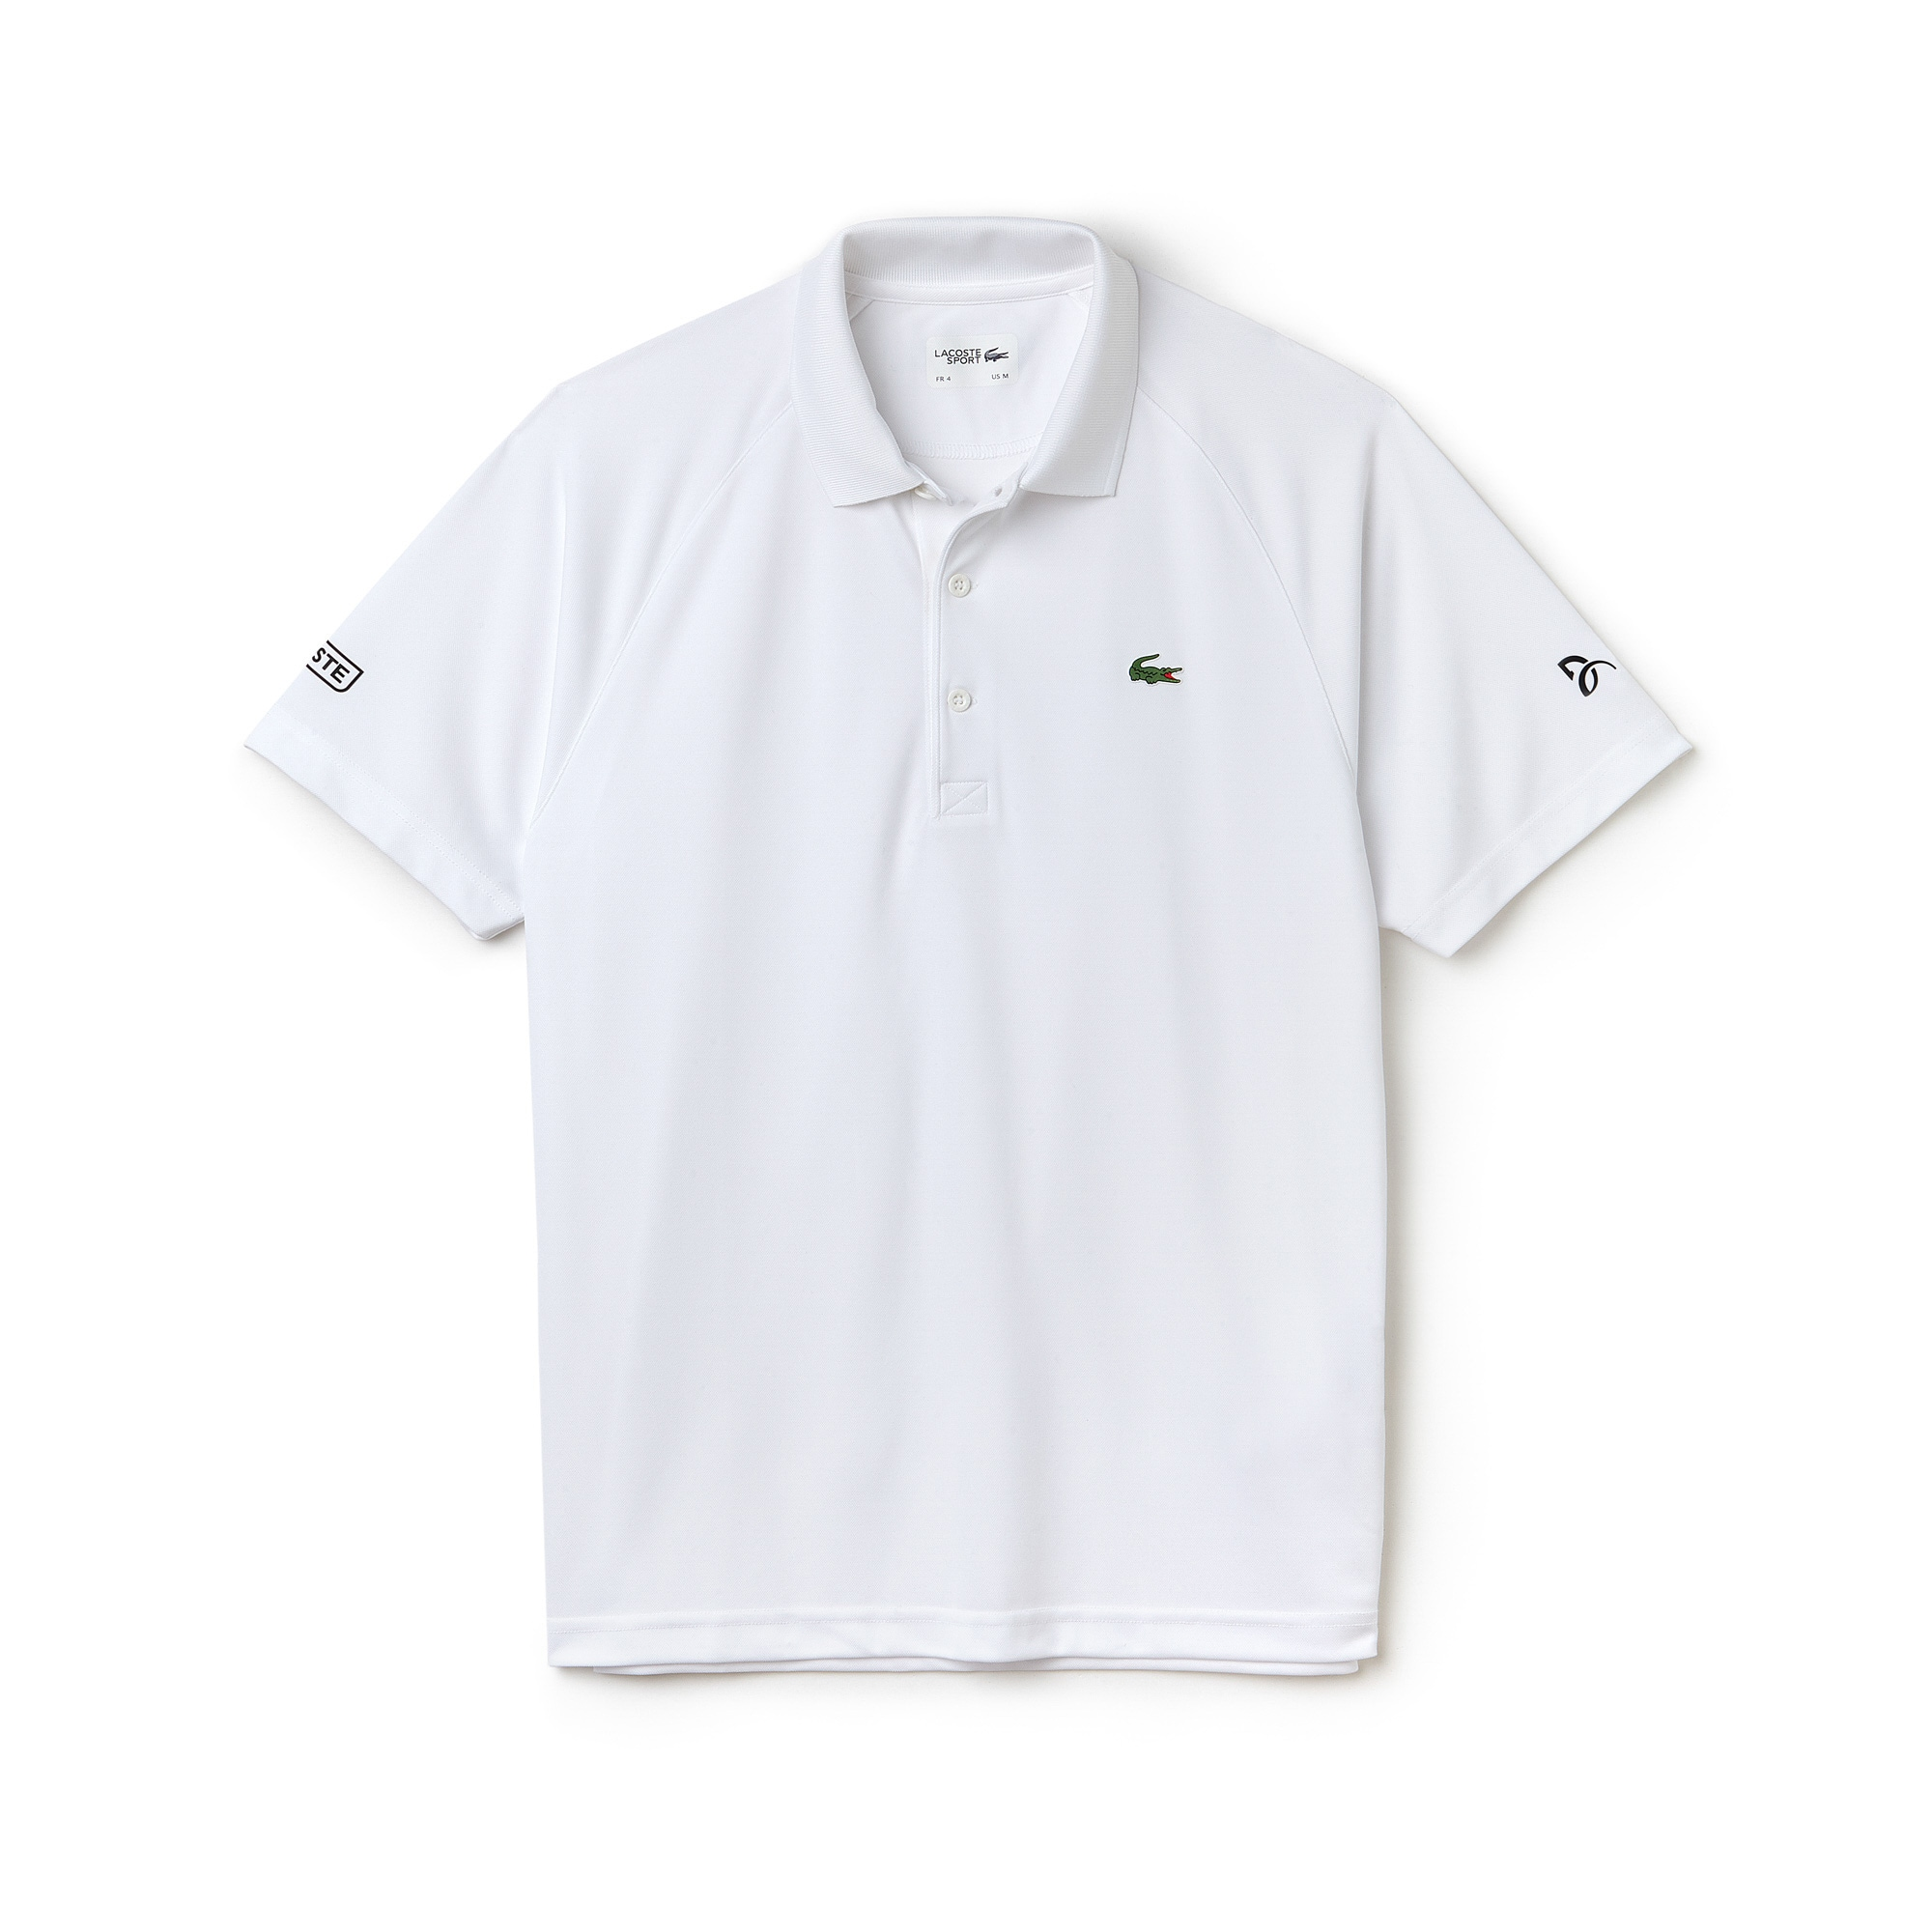 Polo Shirt Lacoste Collection for Novak Djokovic - Exclusive Green Edition